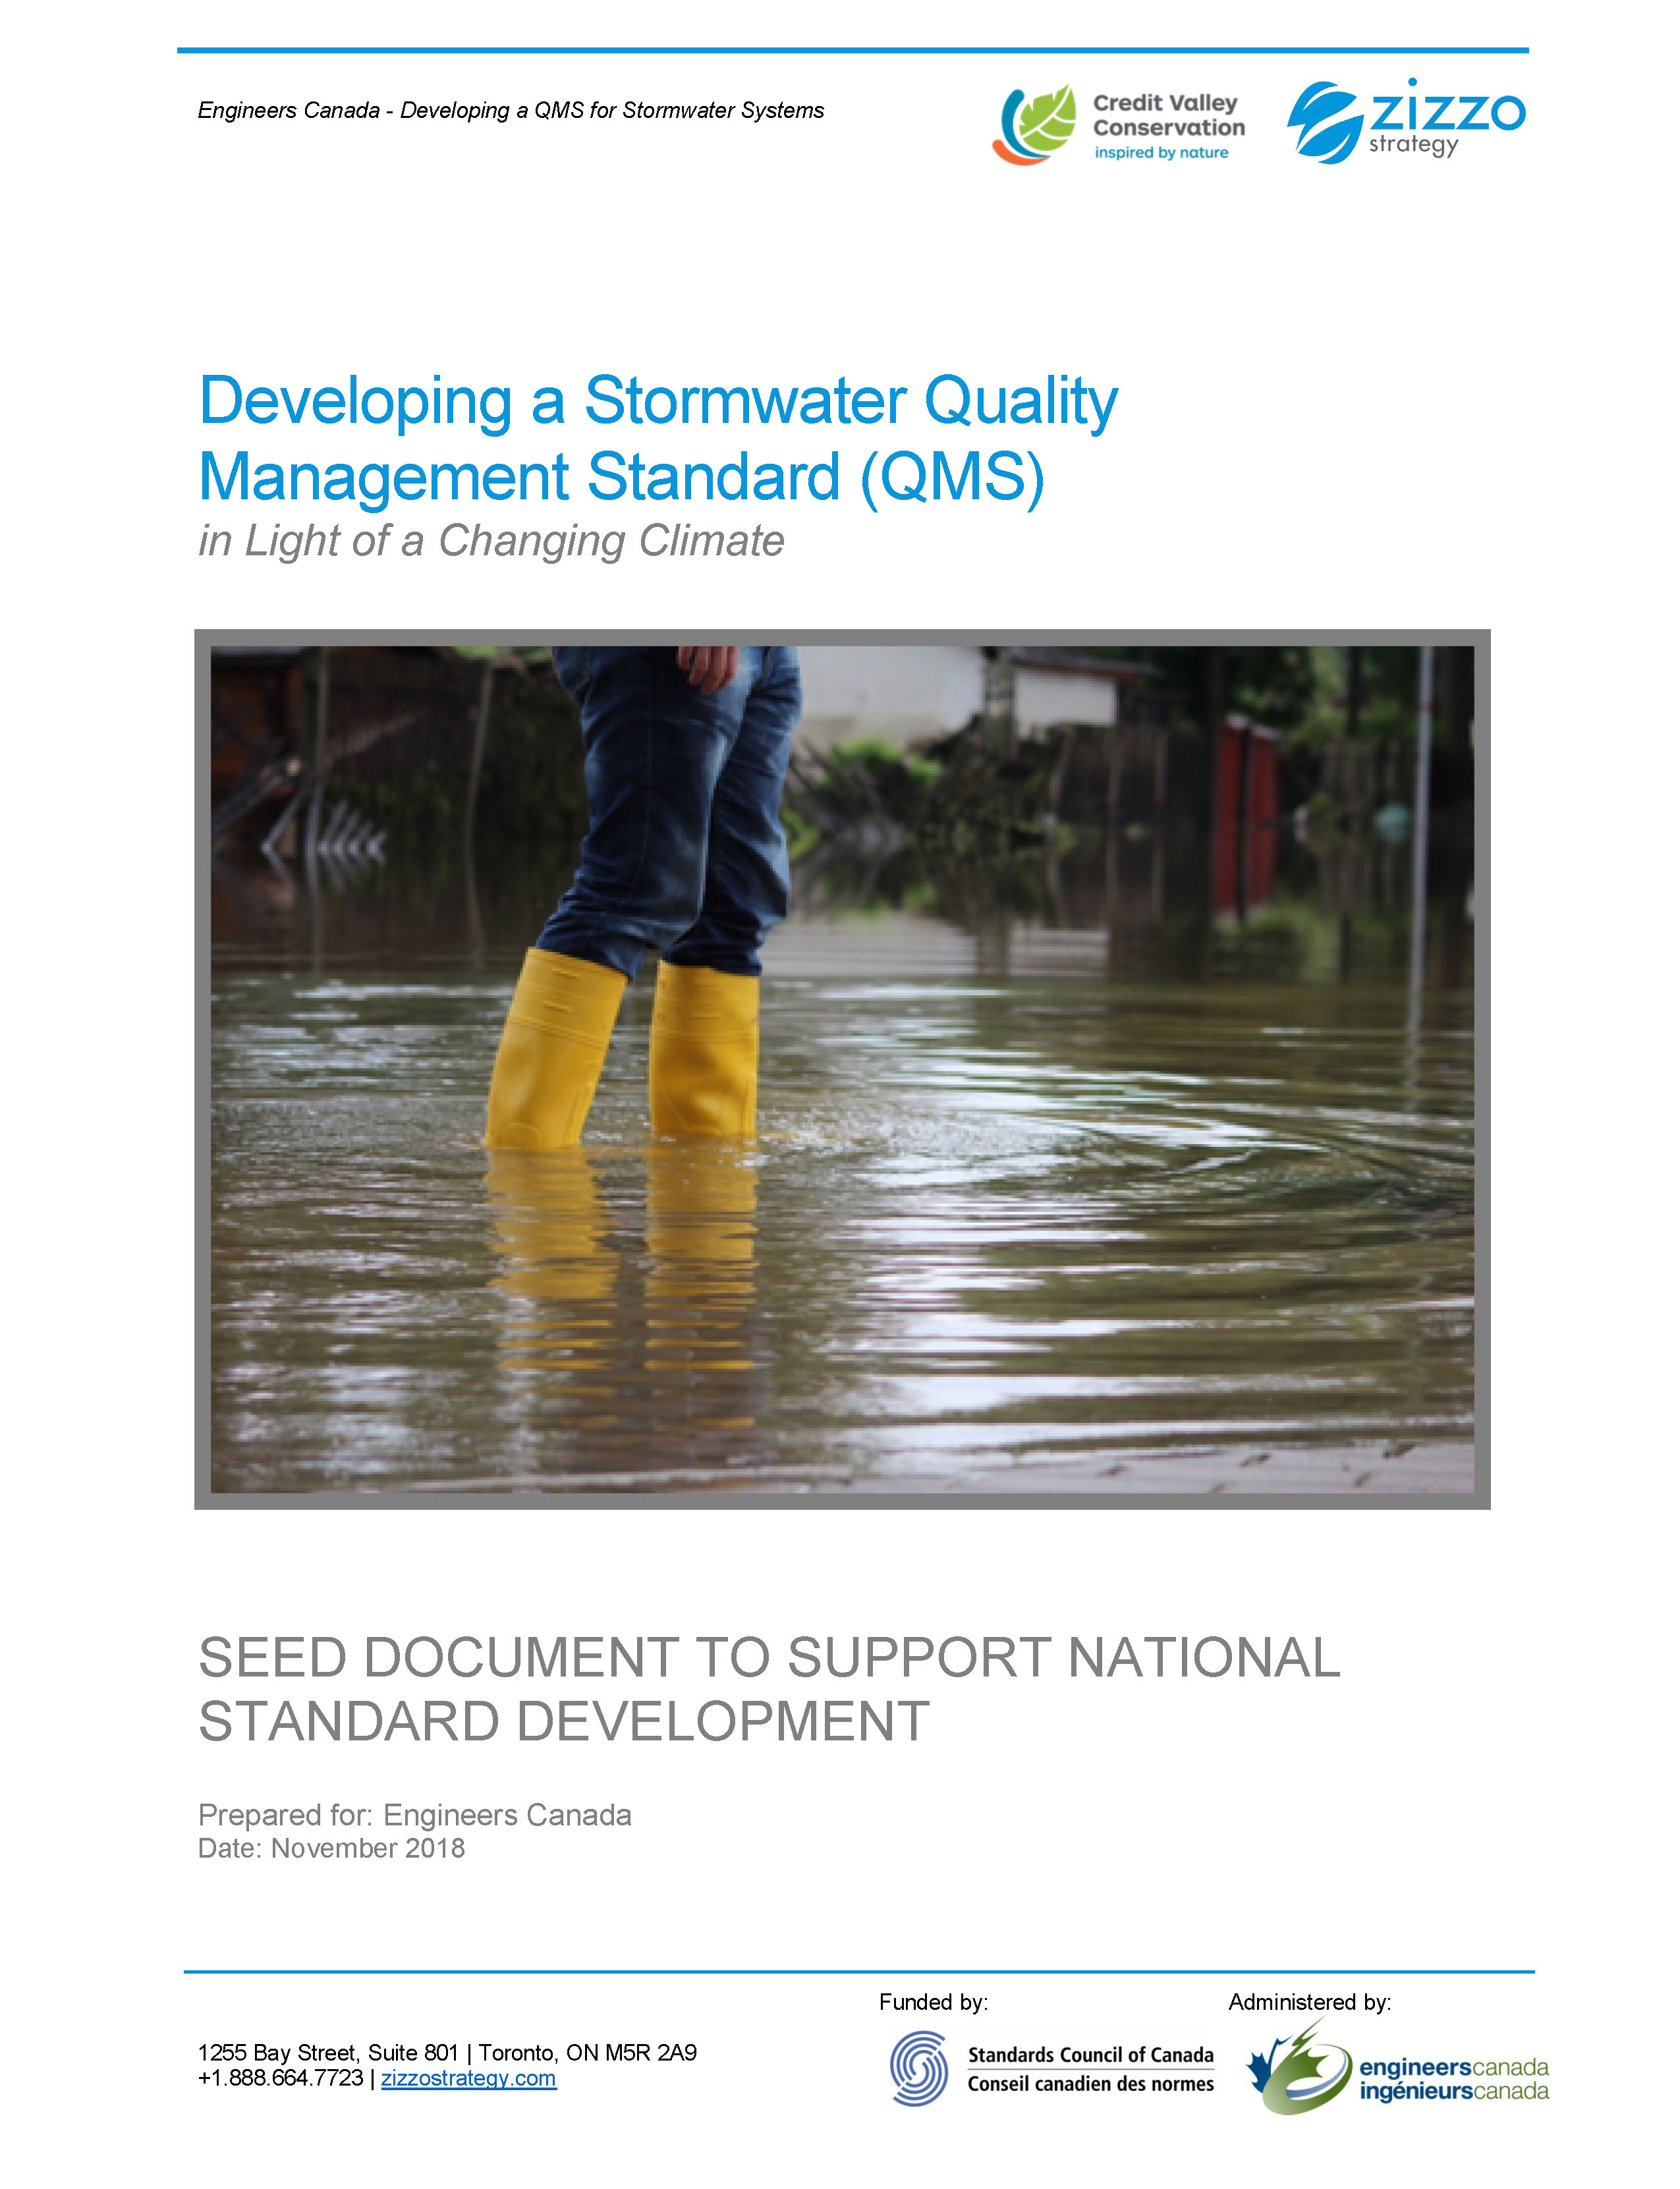 Developing a Stormwater Quality Management Standard (QMS) Cover Page